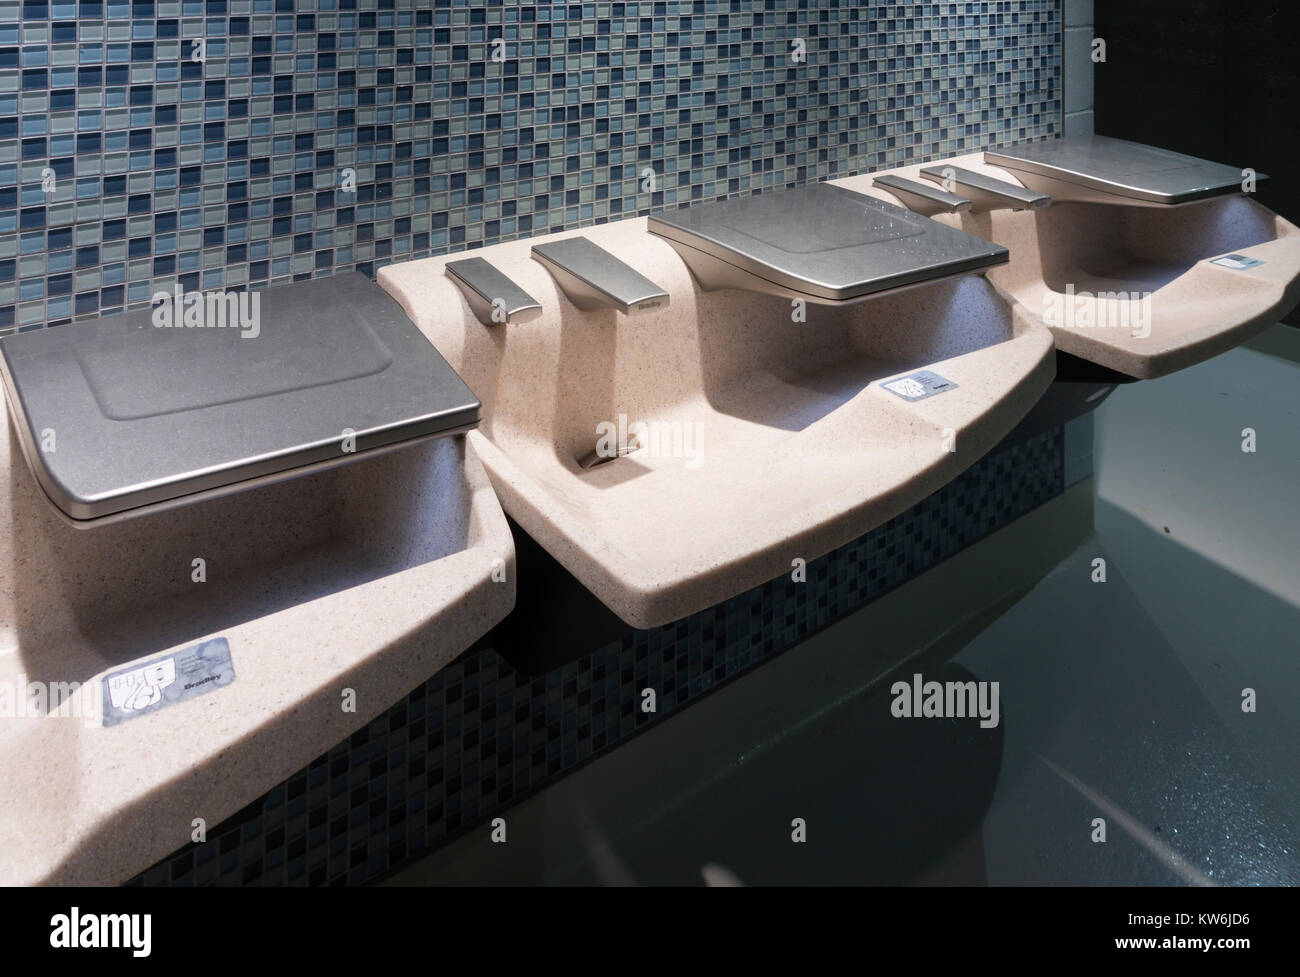 Bradley Advocate AV-Series sinks are an all-in-one sink that dispenses soap, water and drying touch free. - Stock Image